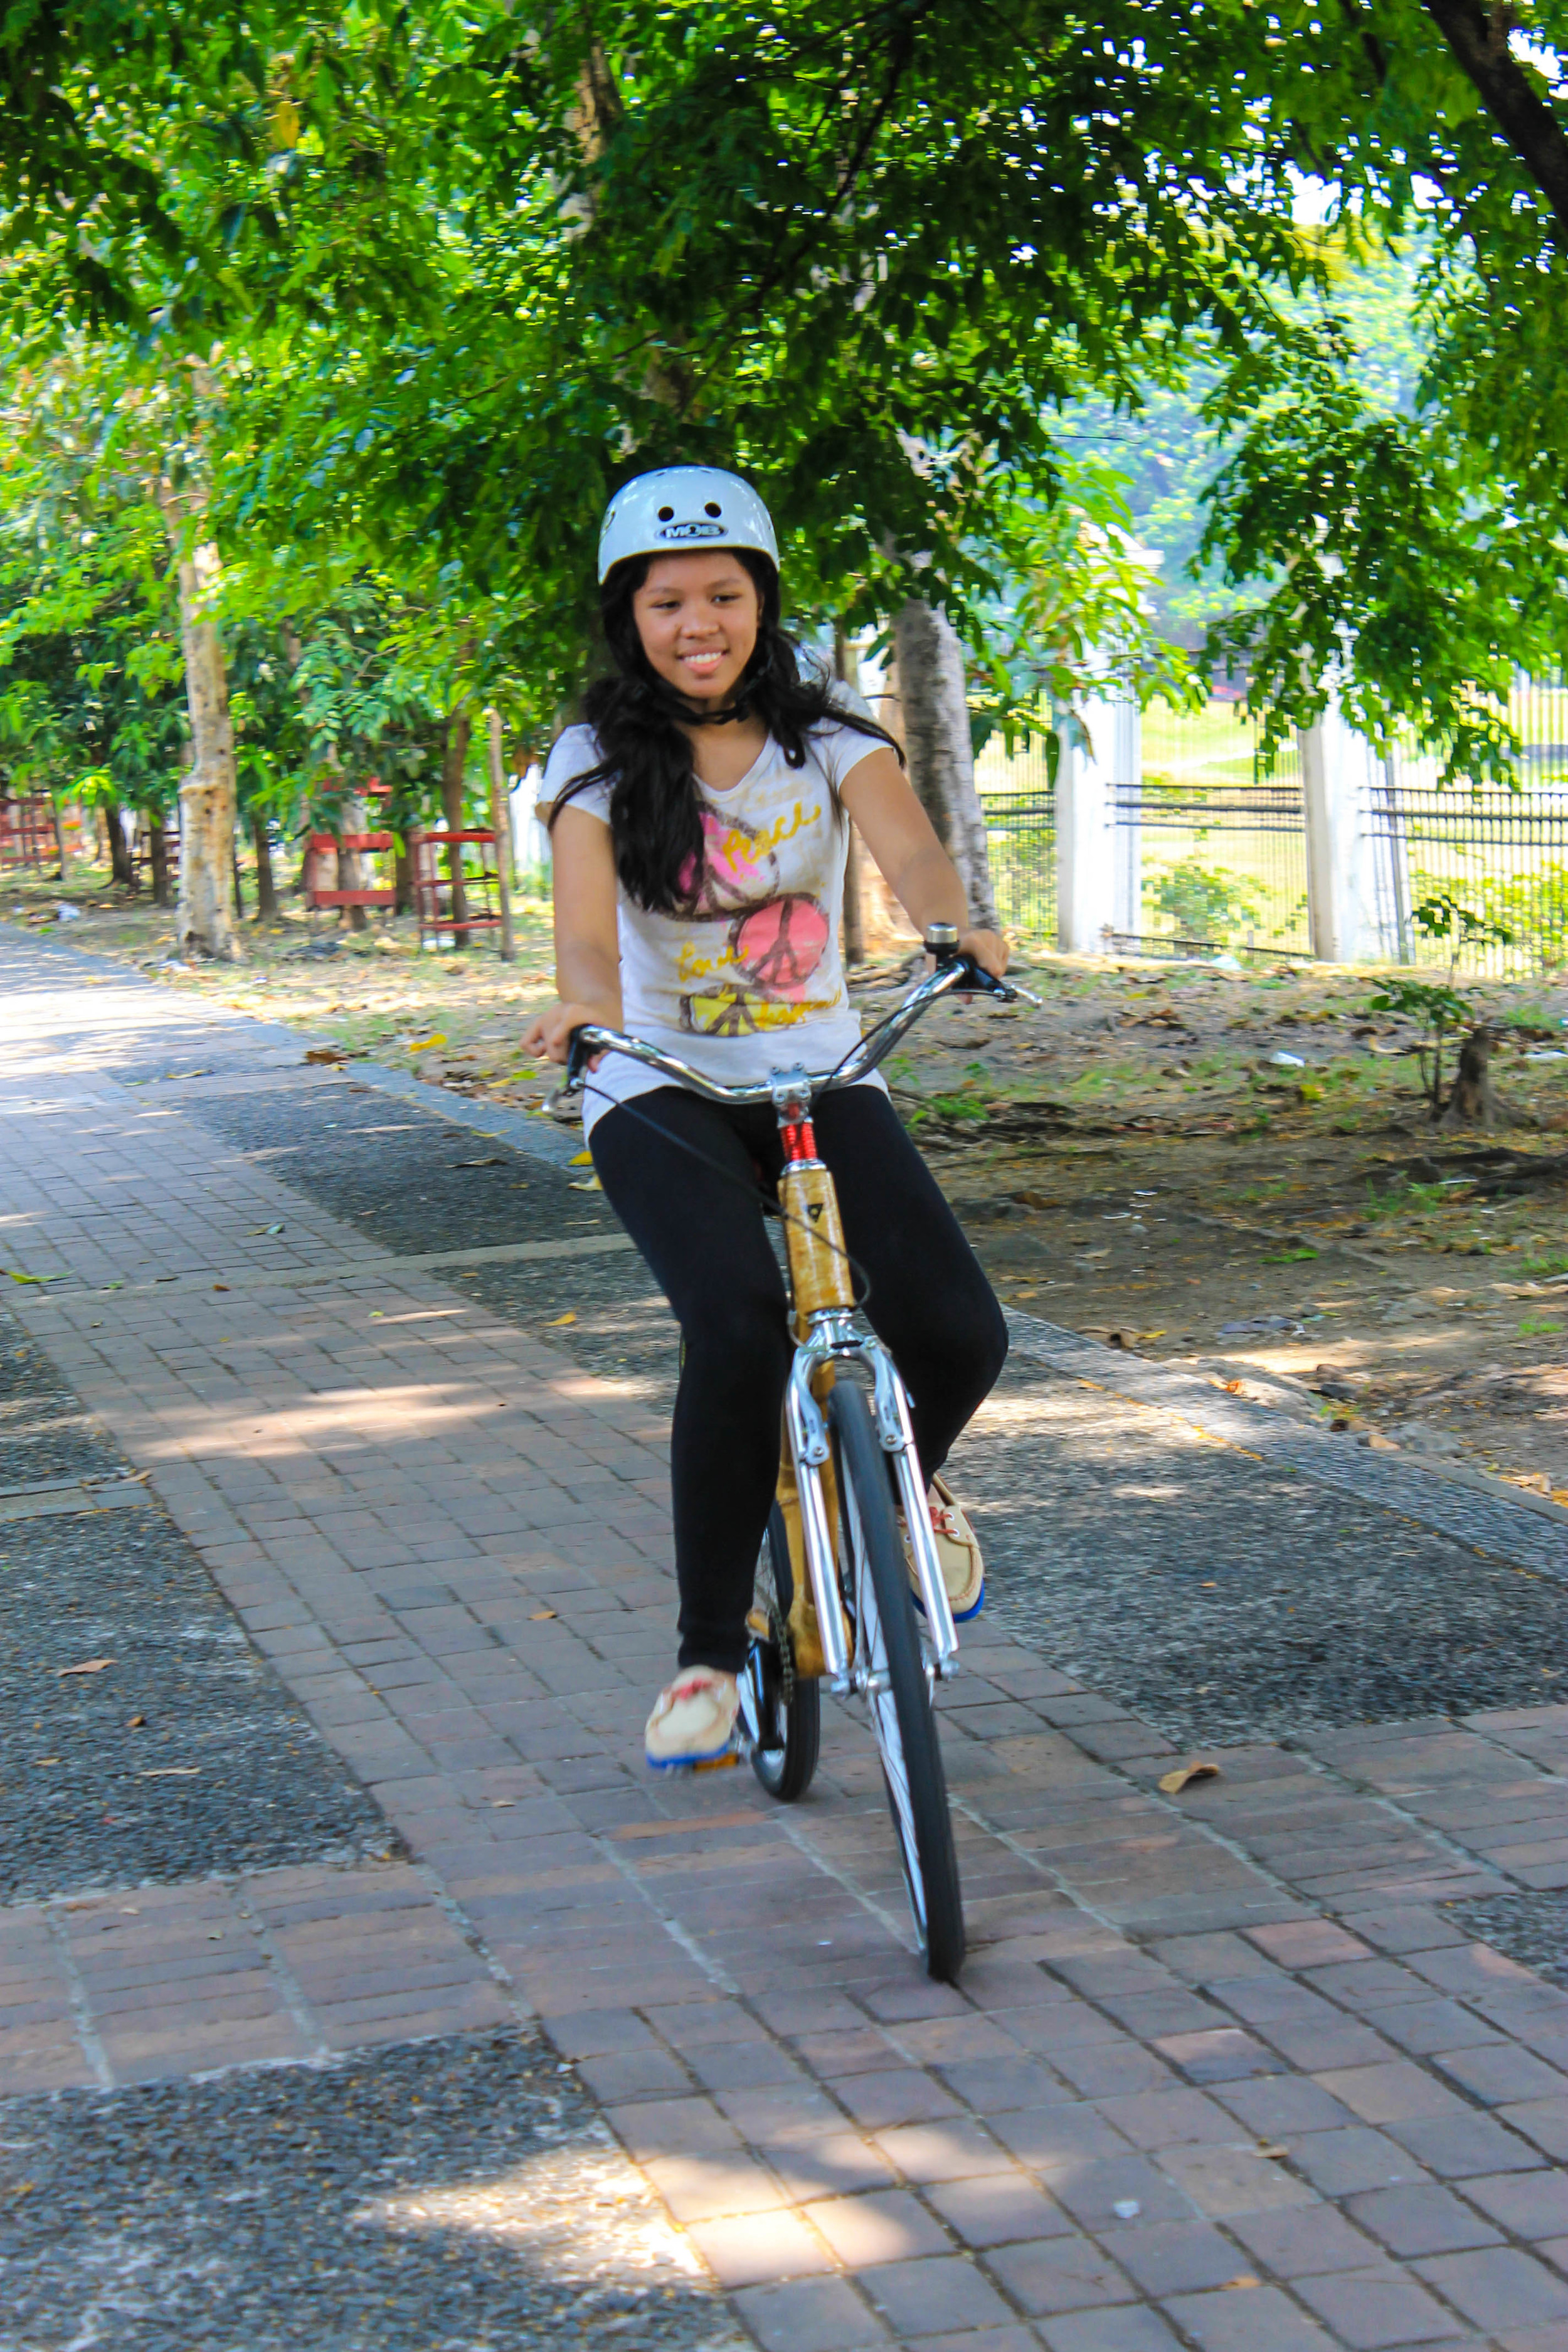 Bambike Intern Linet Dumag riding a company bicycles in the park.